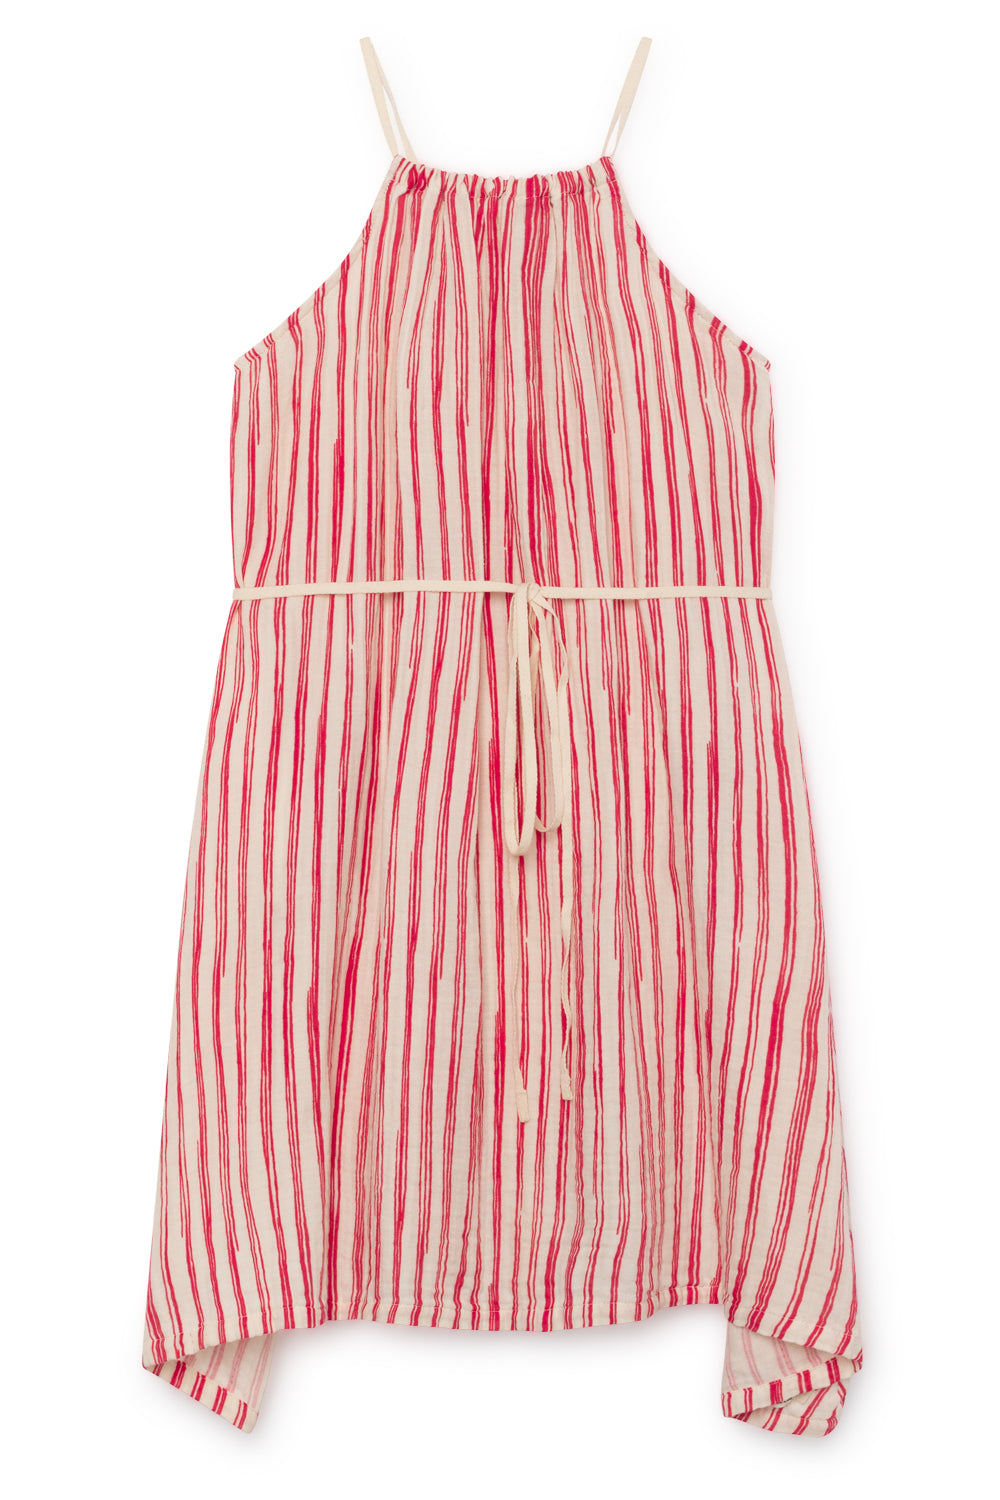 Little Creative Factory Apron Dress - Red Stripe